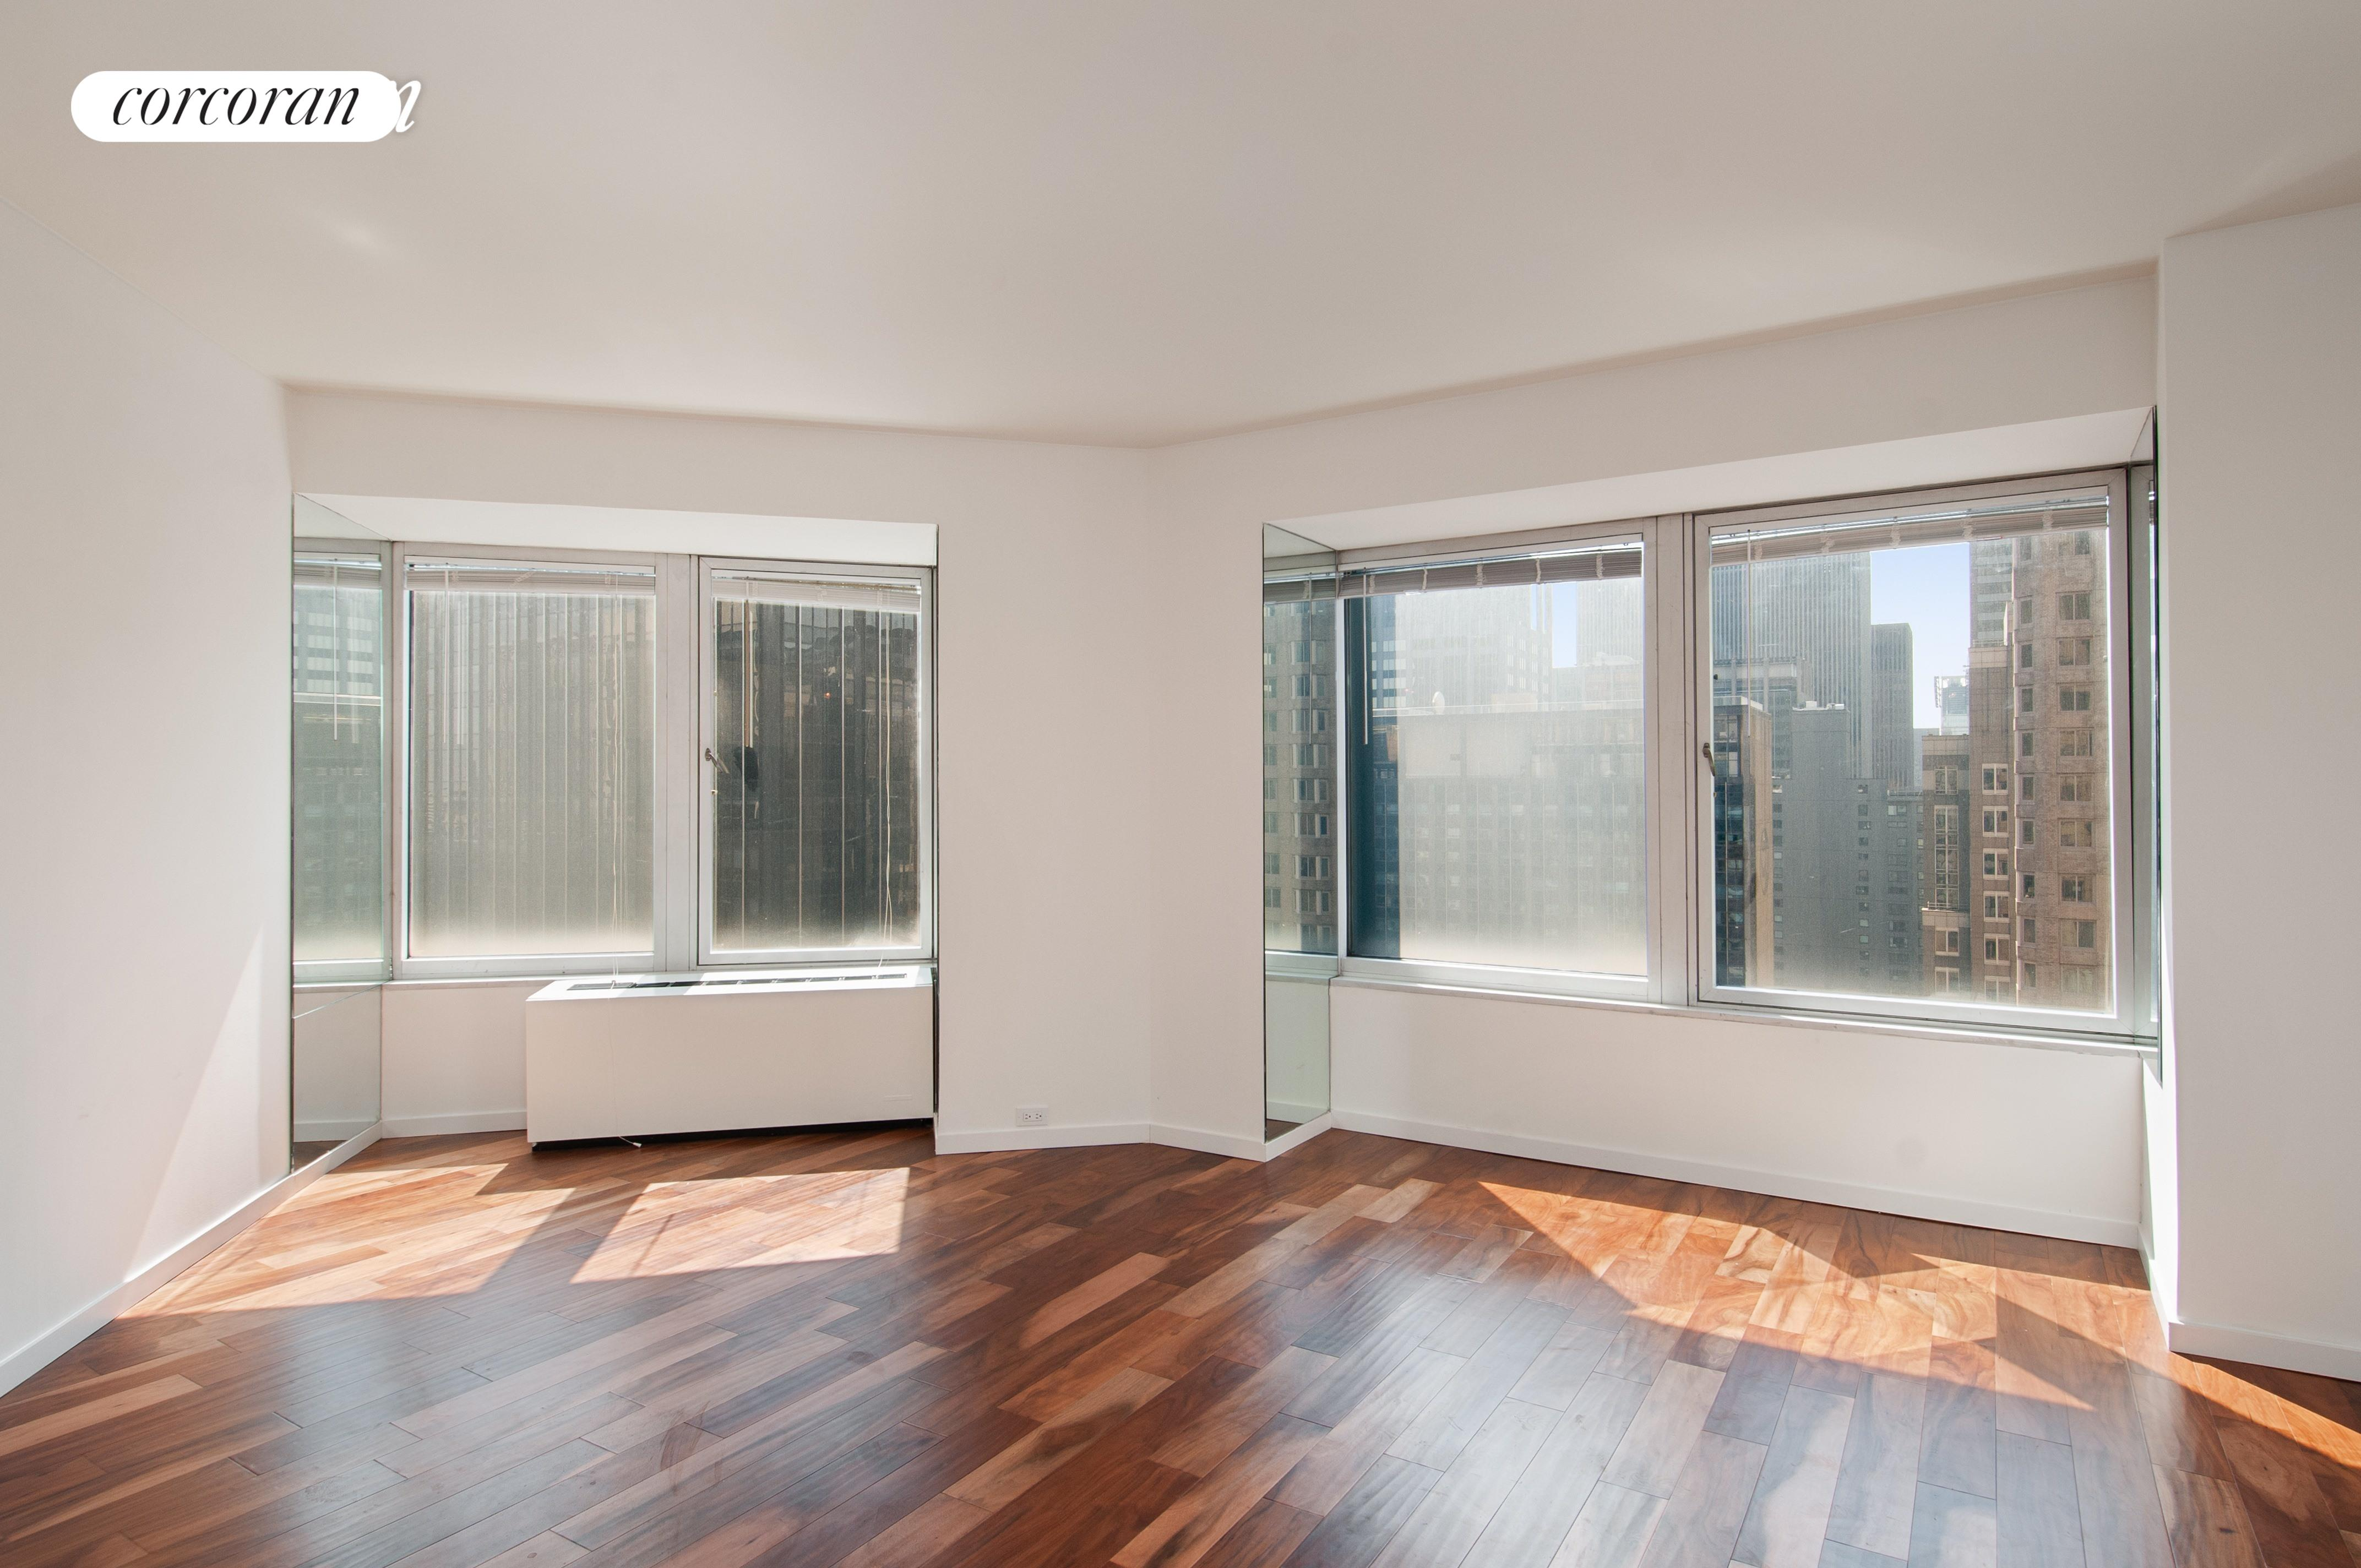 No Fee from Renter.  Large one bedroom with one and half bathrooms just came on the market. Located In heart of Manhattan, South of Central Park , the Cityspire is a White Glove Luxury condominium with 24 hour doorman /concierge. gym, swimming pool, meeting room and garage. This unit has a brand new hard-wood floor, new appliances, open city and partial river views and generous closet space. Landry room on each floor. Fine Dinning, Shopping and public transportation are all near by. Corporations, diplomats and pied-à-terre are welcome. Sorry no pets. Be the first one to see..